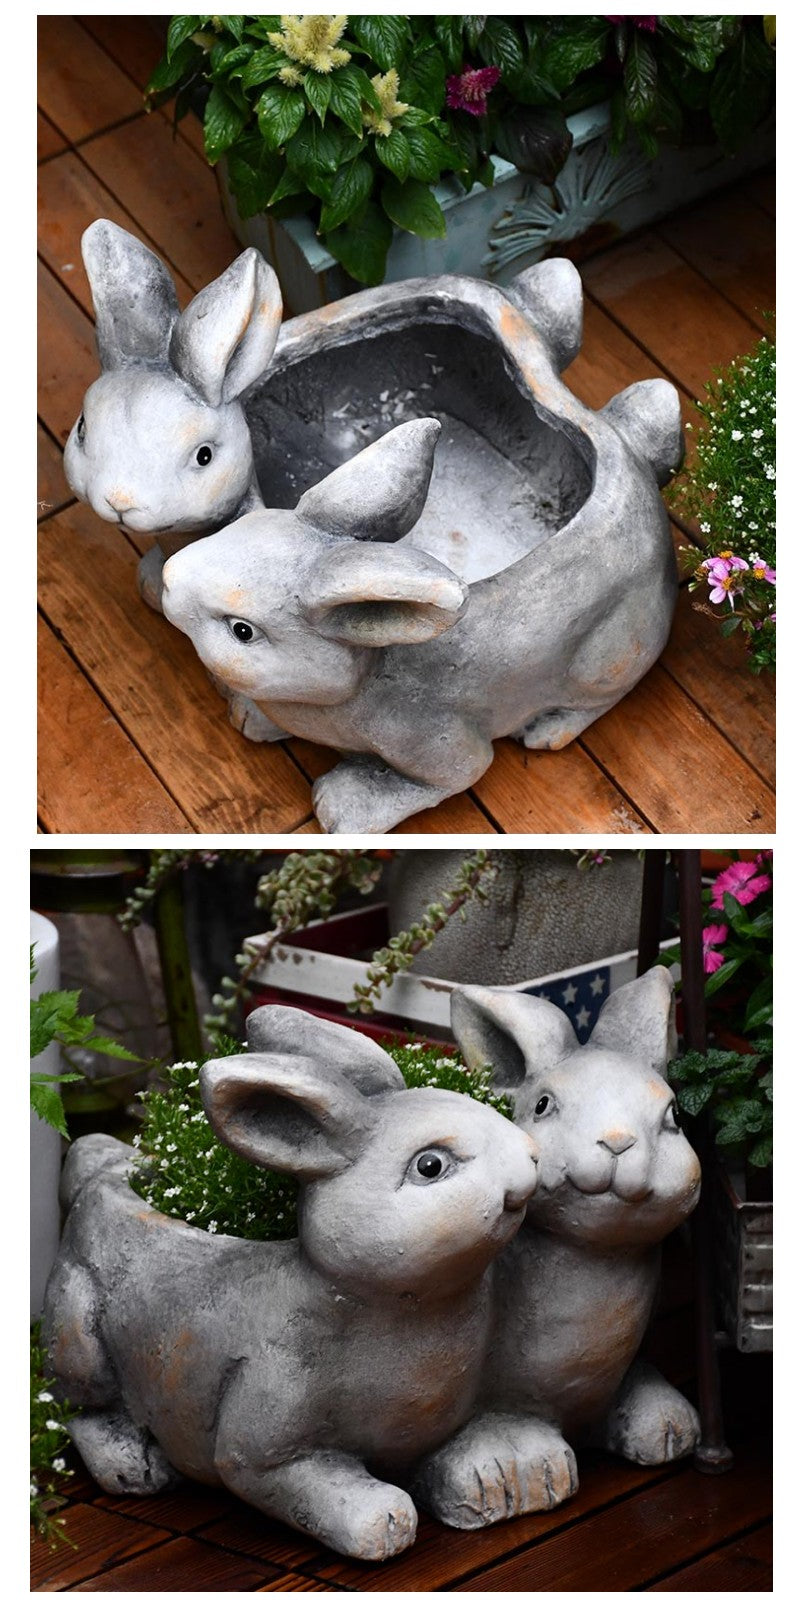 Two Rabbits Statue, Rabbit Flower Pot, Animal Statue for Garden Ornament, Villa Outdoor Decoration, Garden Ideas